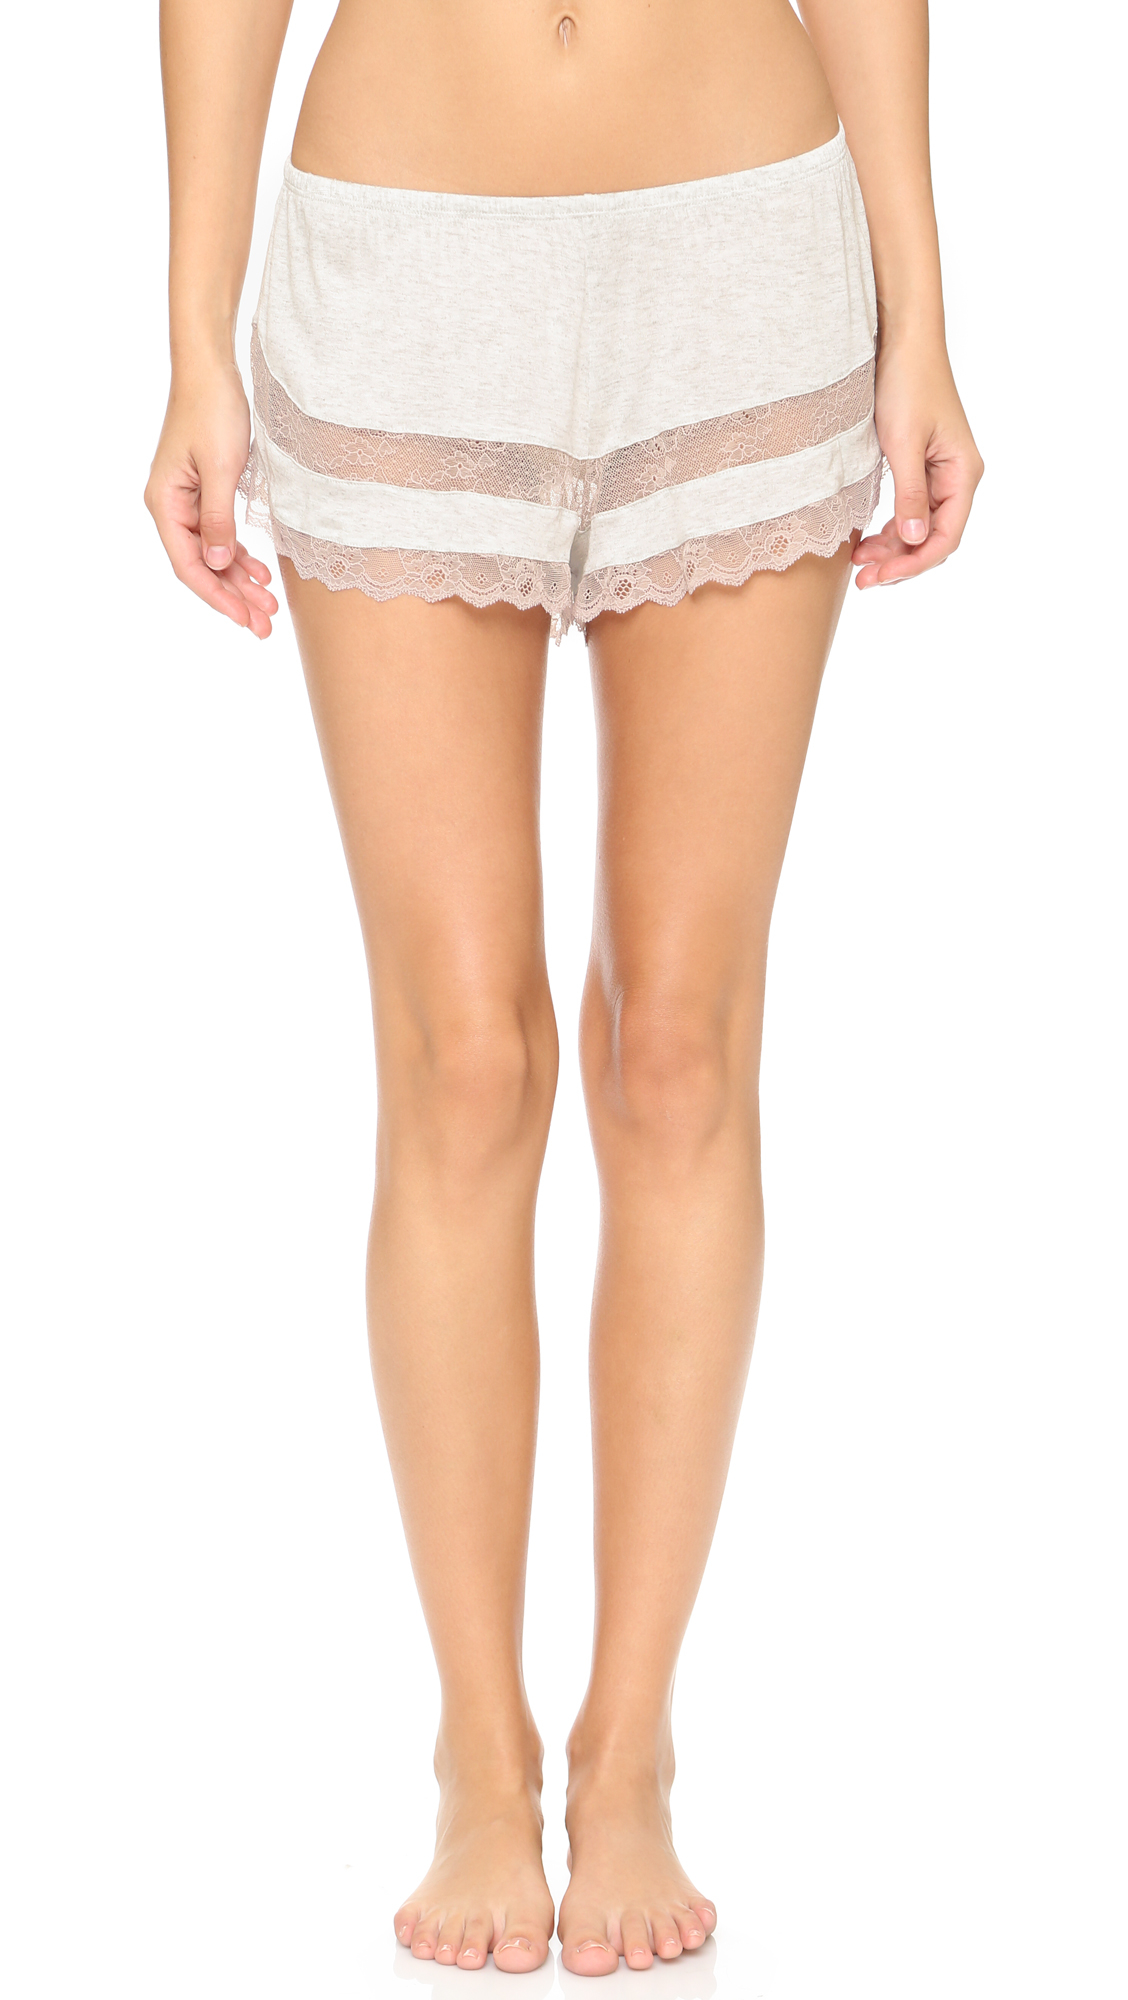 Shop pyjama shorts from the Cotton On Body range today. Browse a range of colours & styles - like lace shorts & more. Free shipping on orders over $